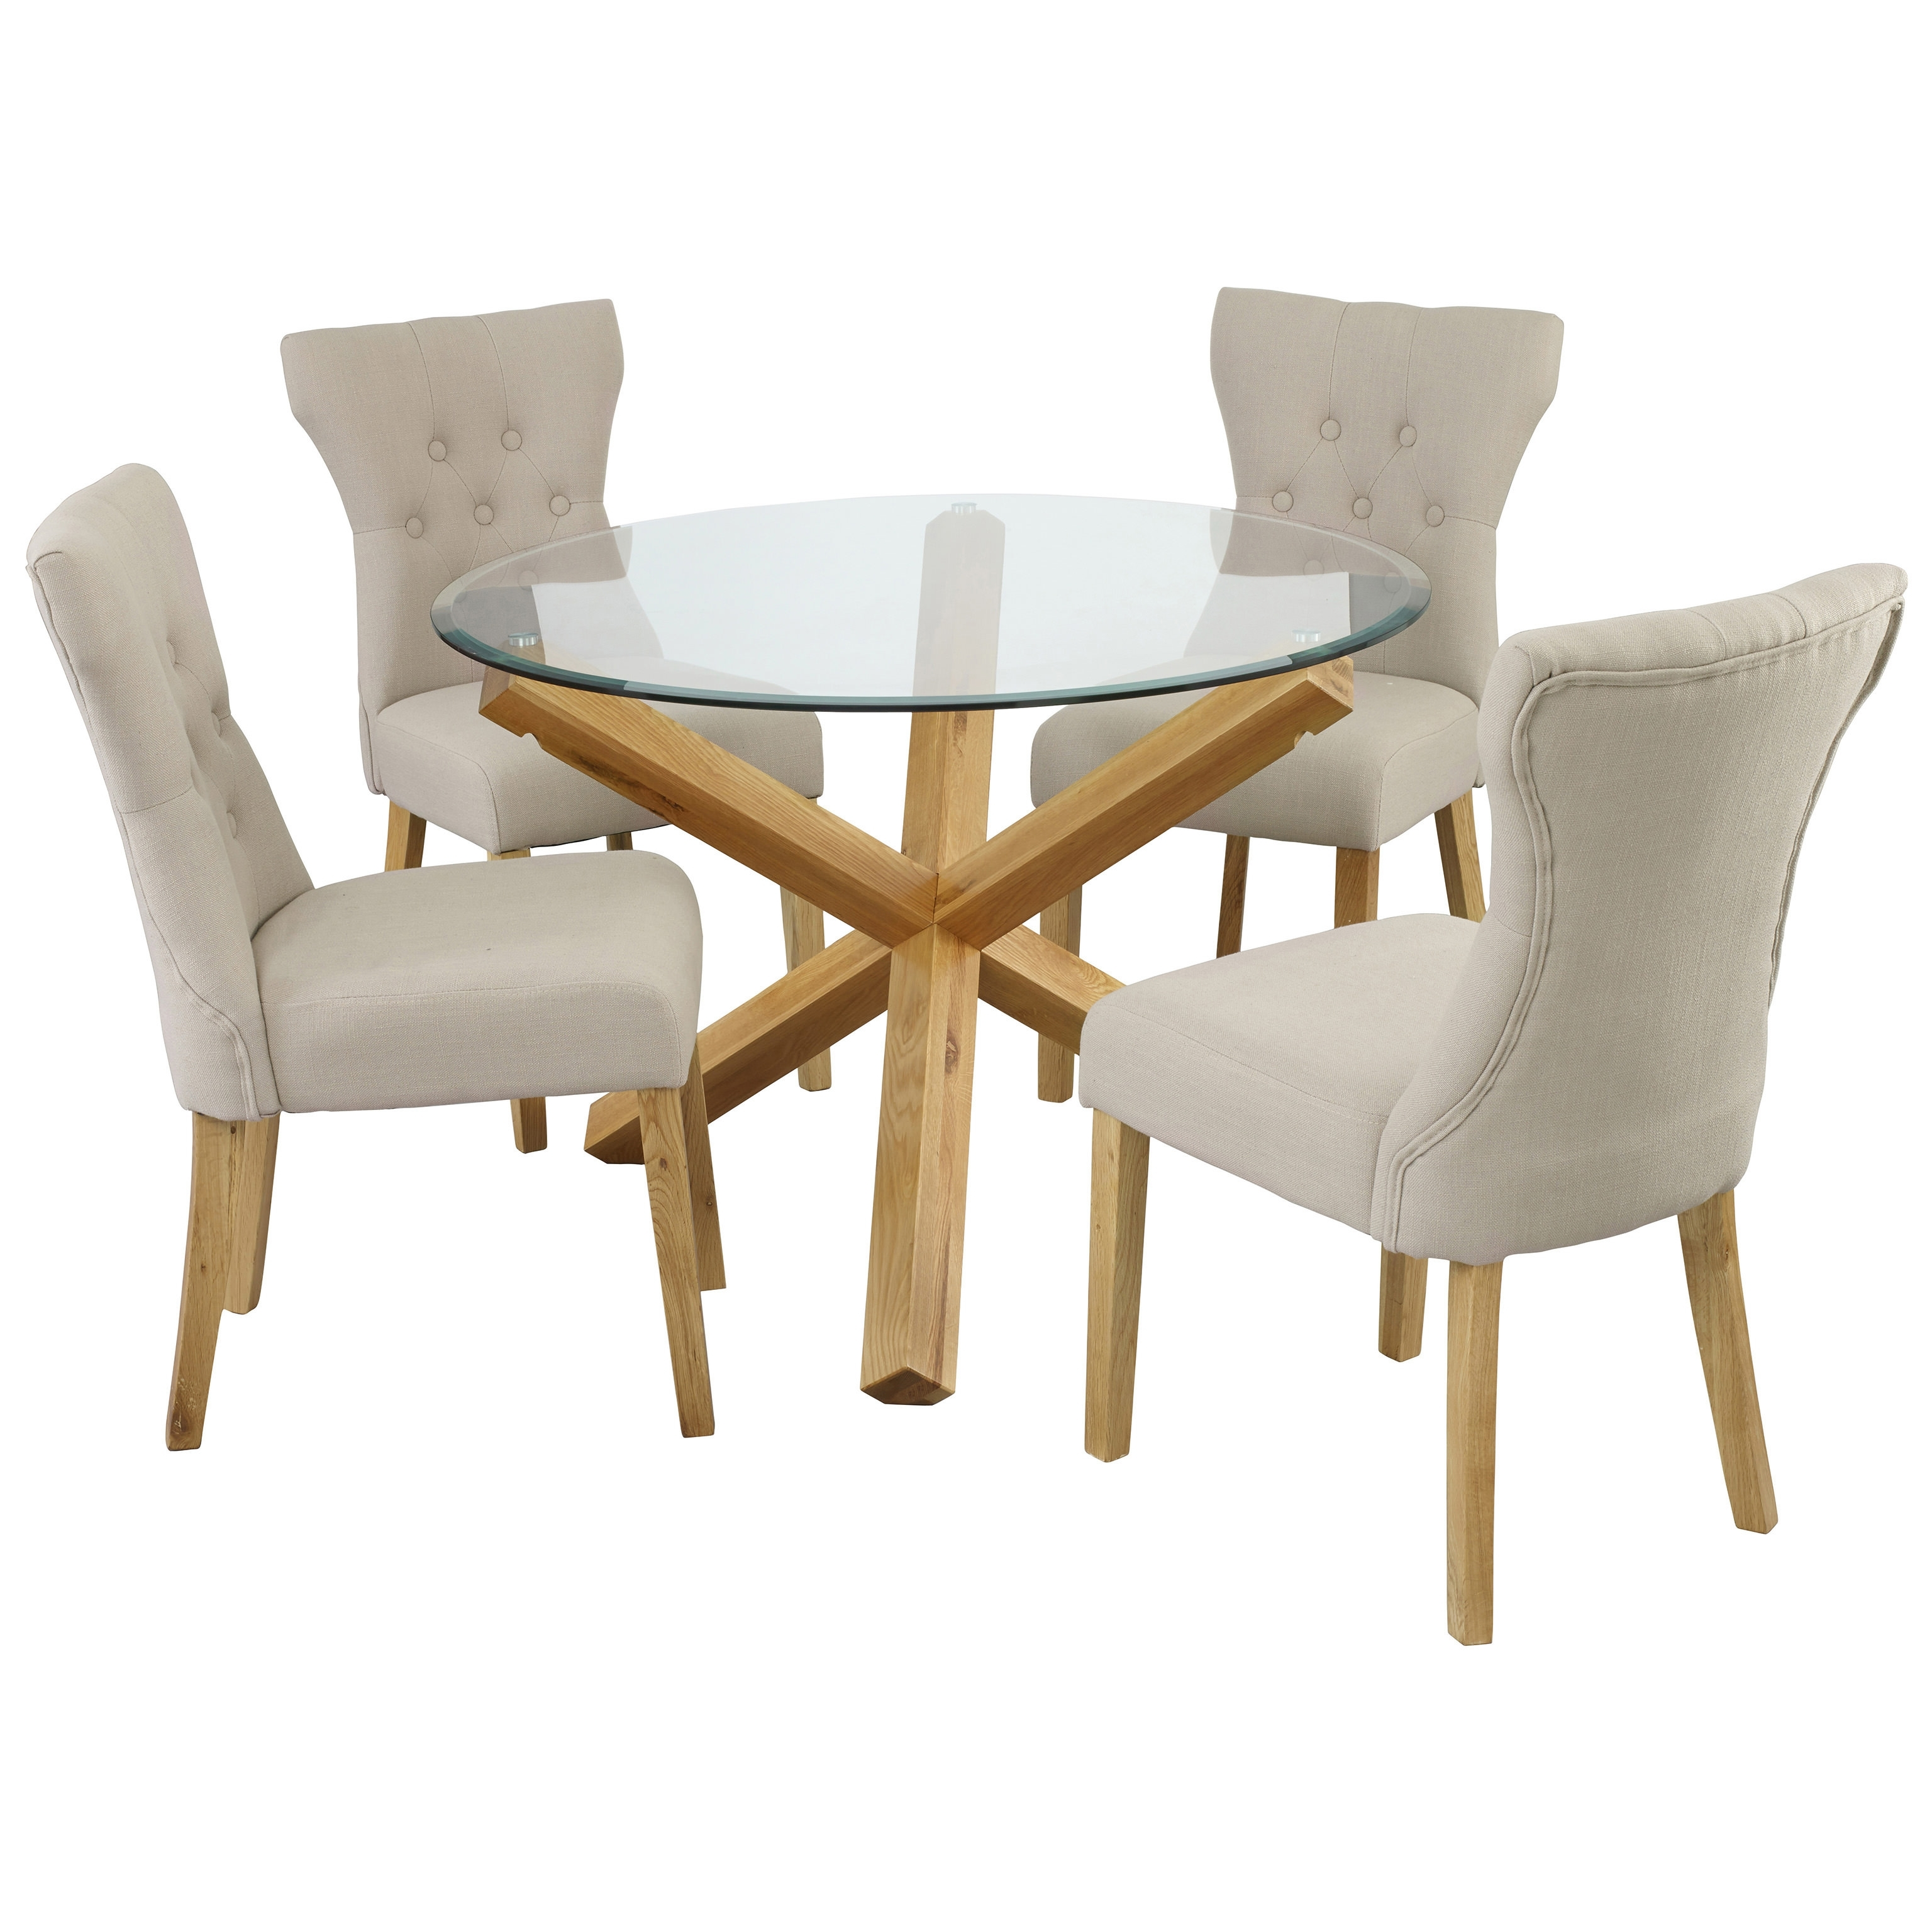 Oak & Glass Round Dining Table And Chair Set With 4 Fabric Seats Intended For Well Known Round Oak Dining Tables And 4 Chairs (View 14 of 25)